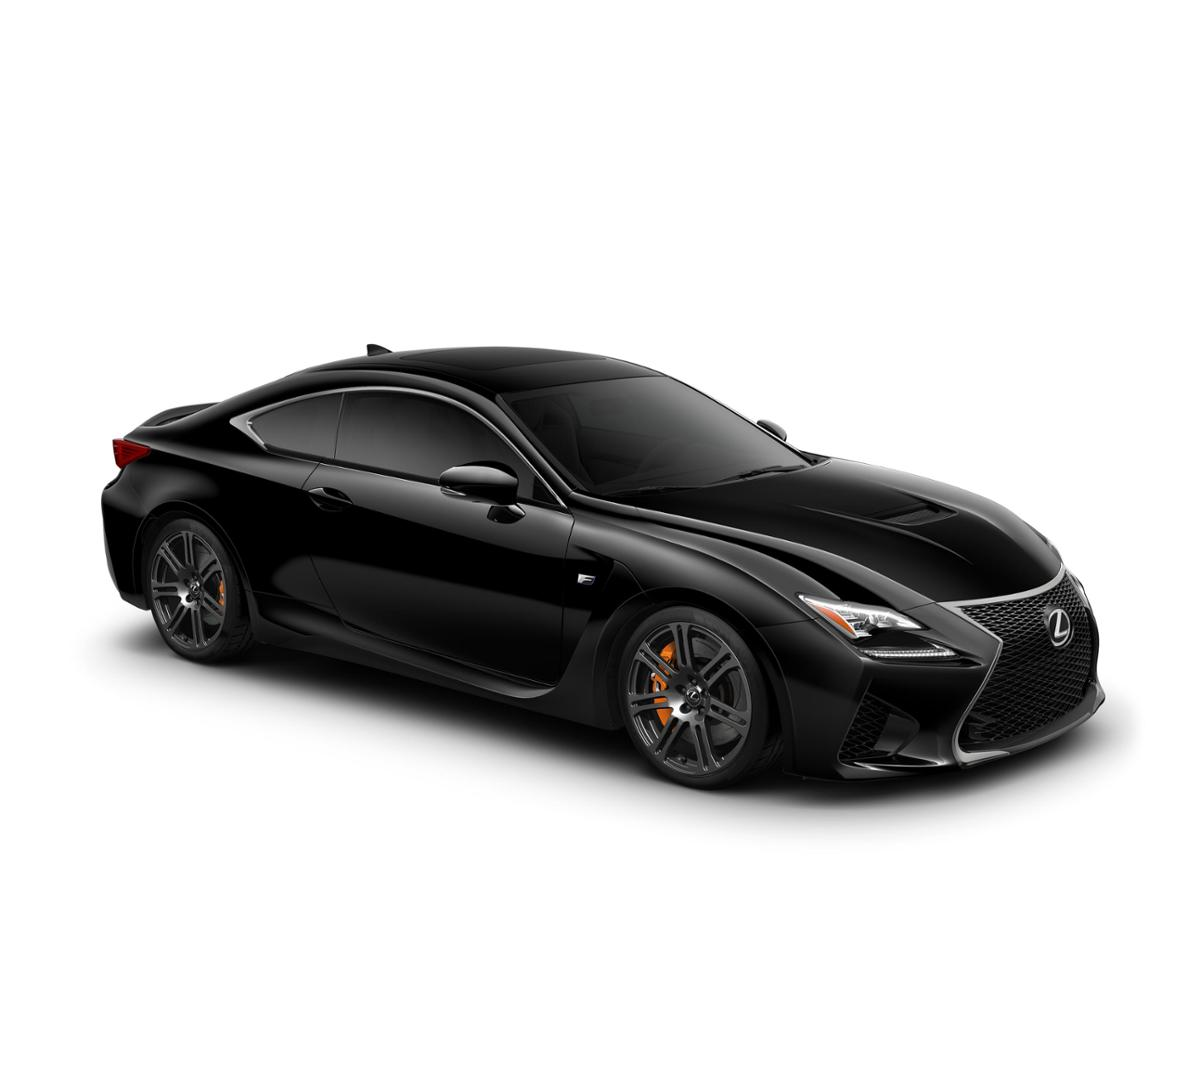 2017 Lexus Rc Exterior: Oakland Obsidian 2017 Lexus RC F Car For Sale